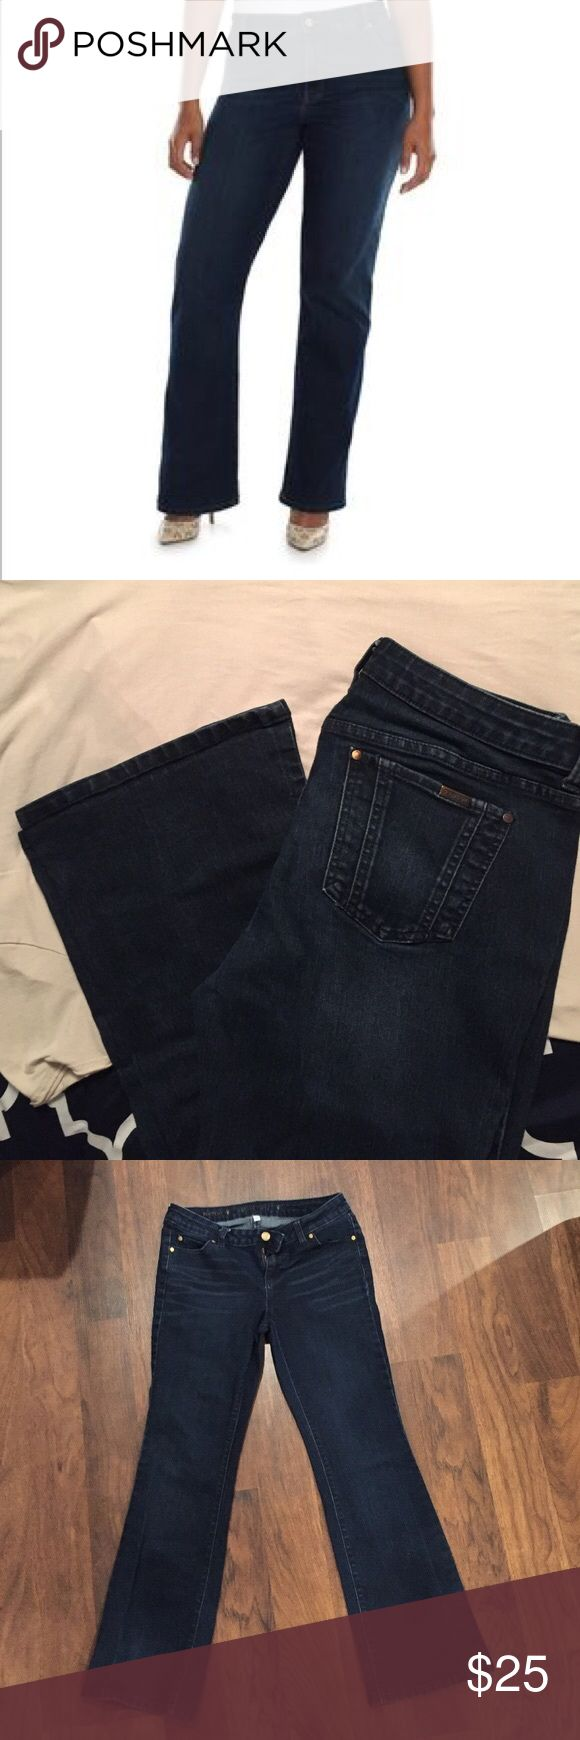 "Jennifer Lopez Dark Bootcut Jeans 14 Jennifer Lopez bootcut jeans in dark wash. New without tags. Average length 30"" inseam. Size 14 regular. Bought from Kohls and never wore them because of weight loss. My favorite brand of jeans hands down. Super comfortable! Jennifer Lopez Jeans Boot Cut"